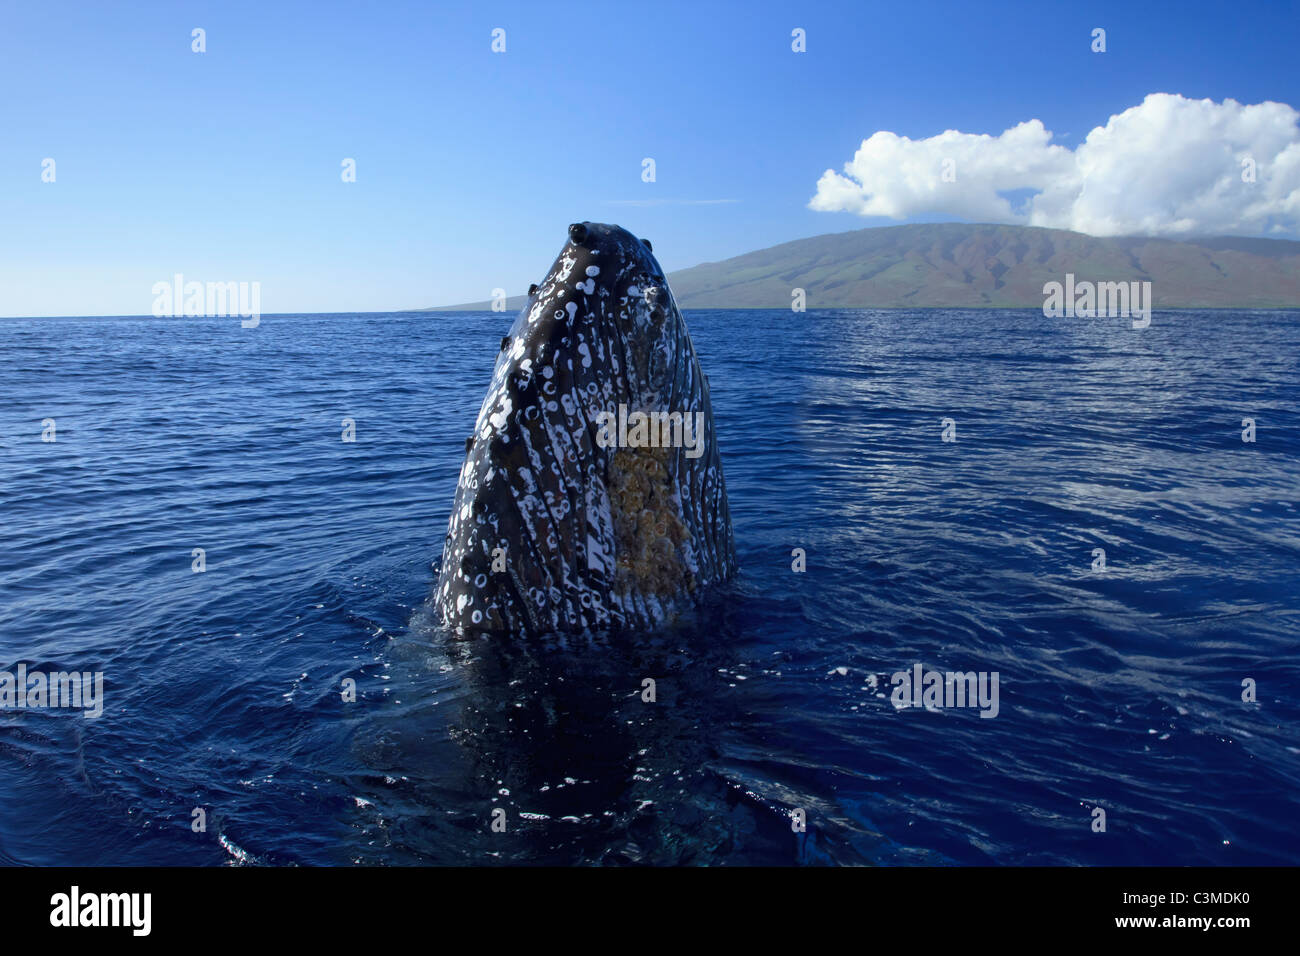 Humpback whale with barnacles surfaces with the island of Lanai; Hawaii in background. - Stock Image